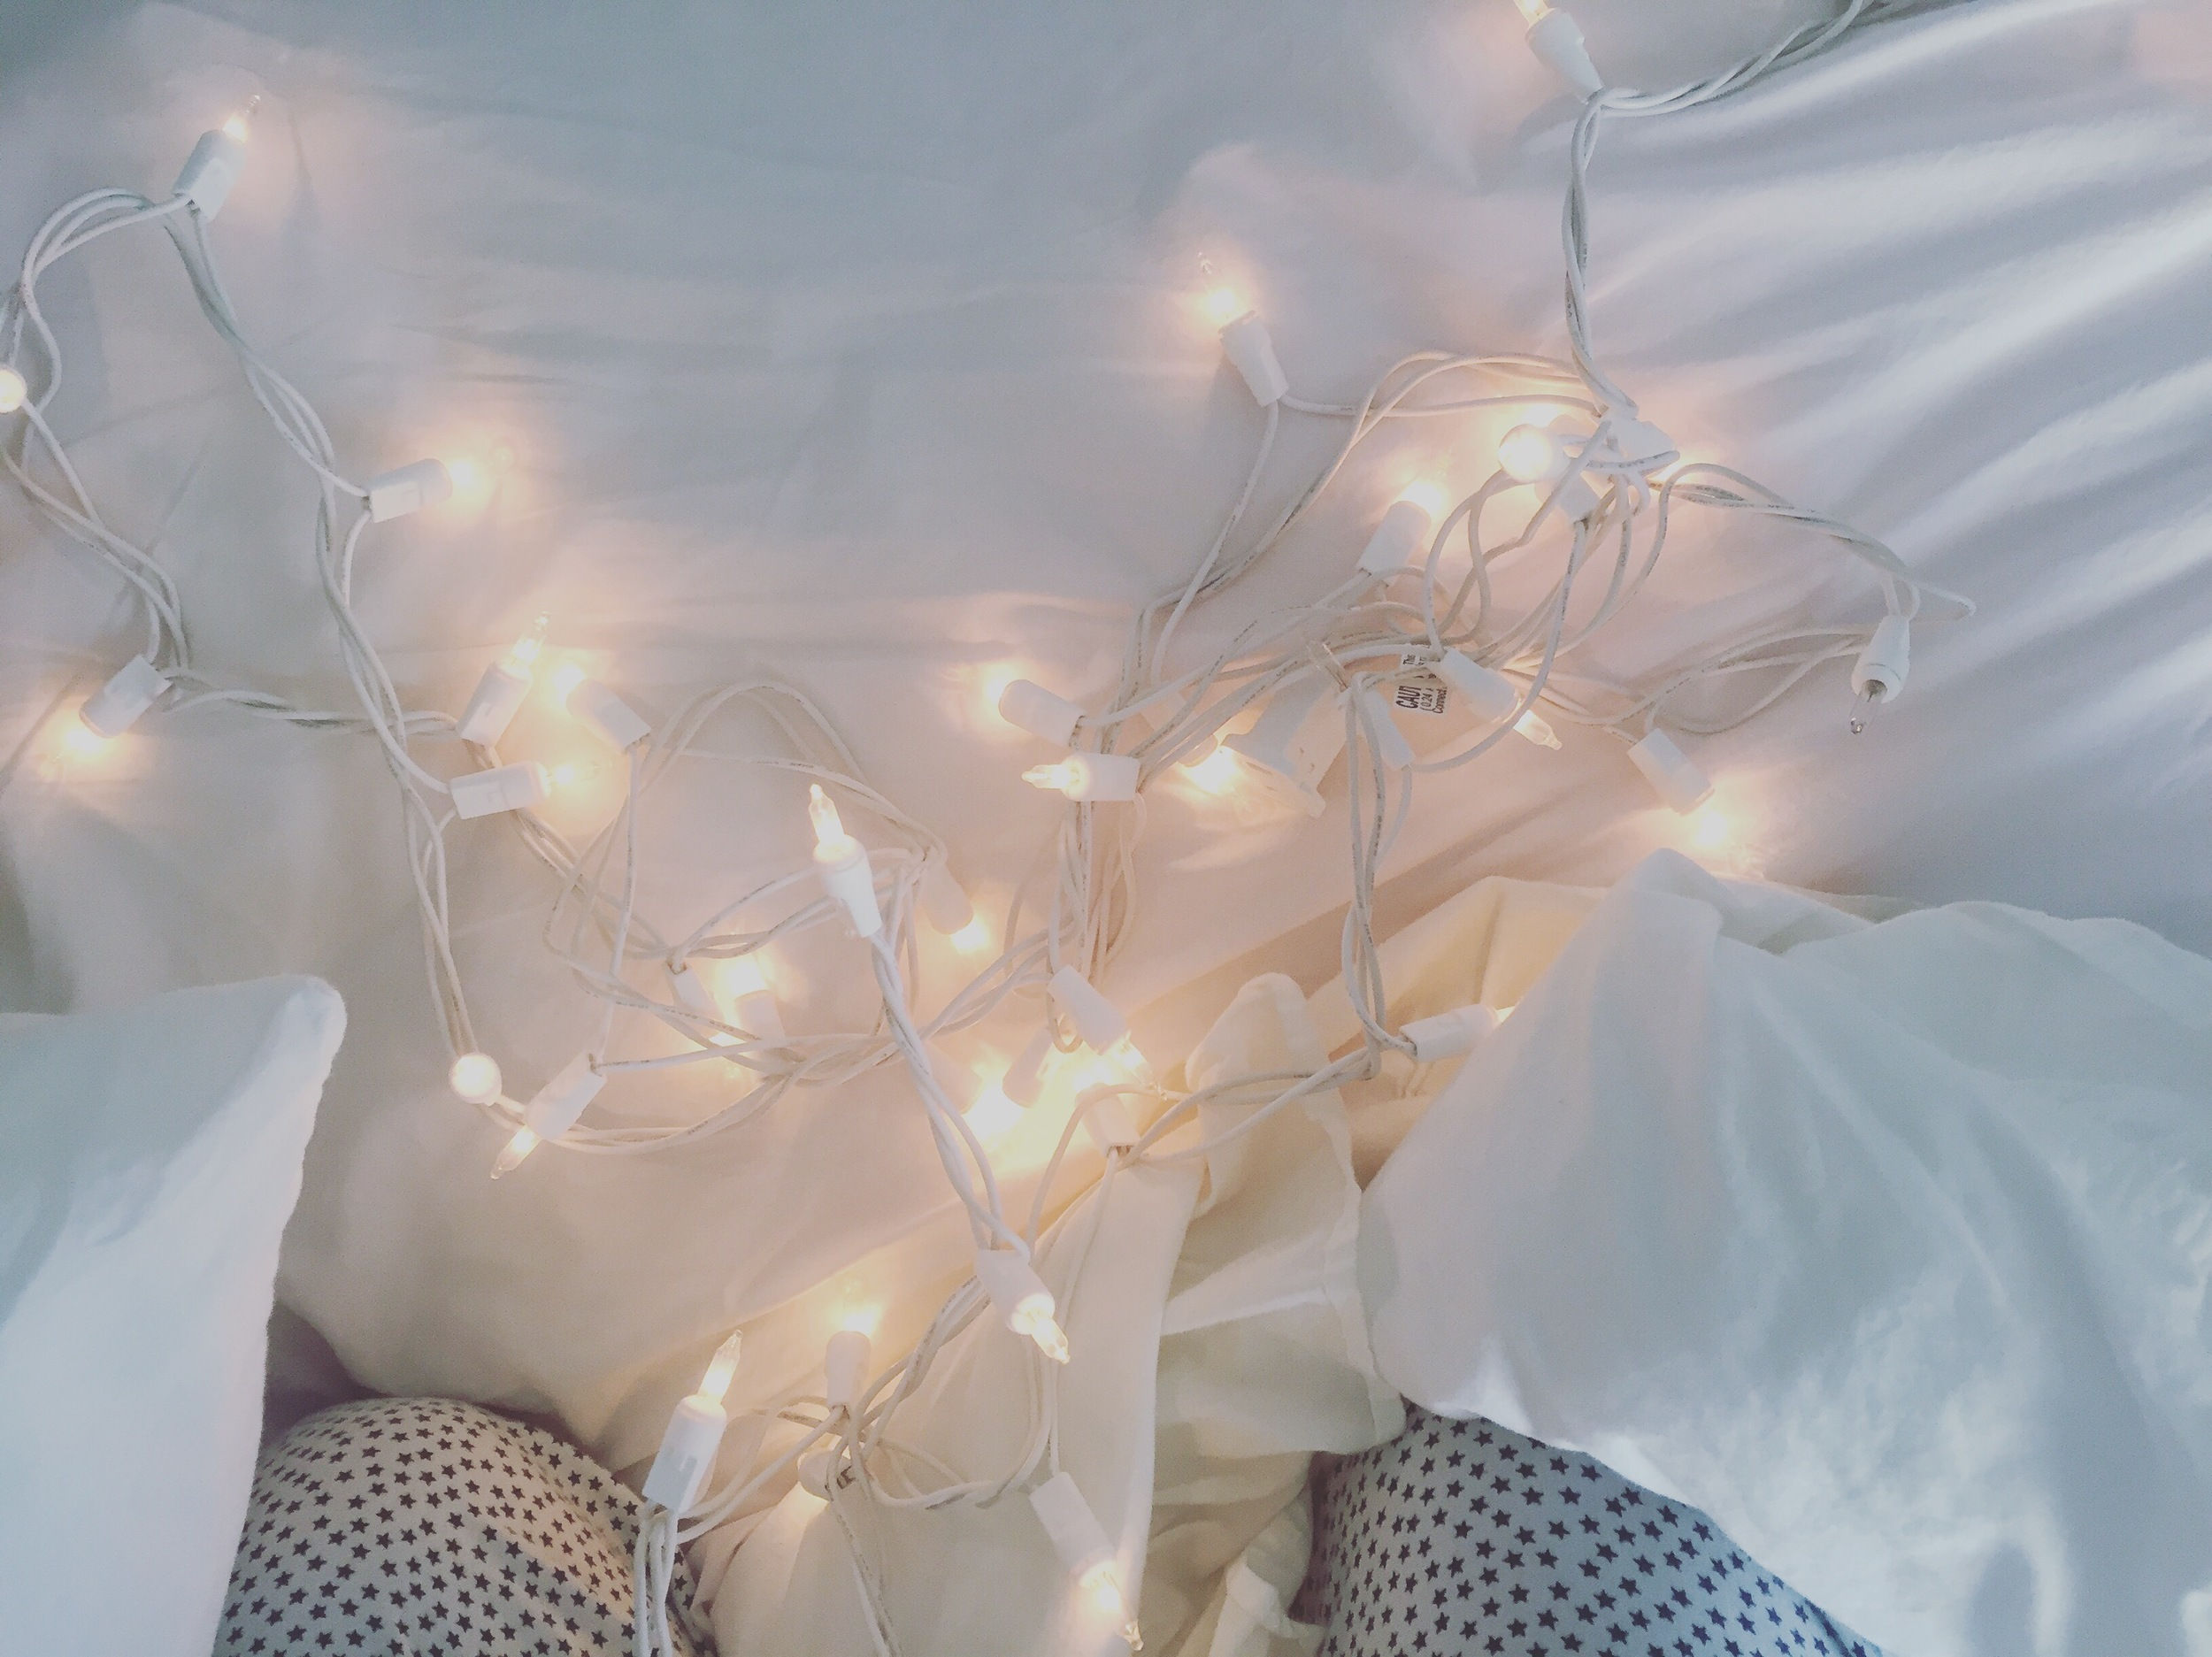 And just a pretty one- I have these Christmas lights wrapped around my headboard and in the last couple of weeks they have been blinking off and on constantly because a bulb is lose. I was able to fix them and enjoy the light again.